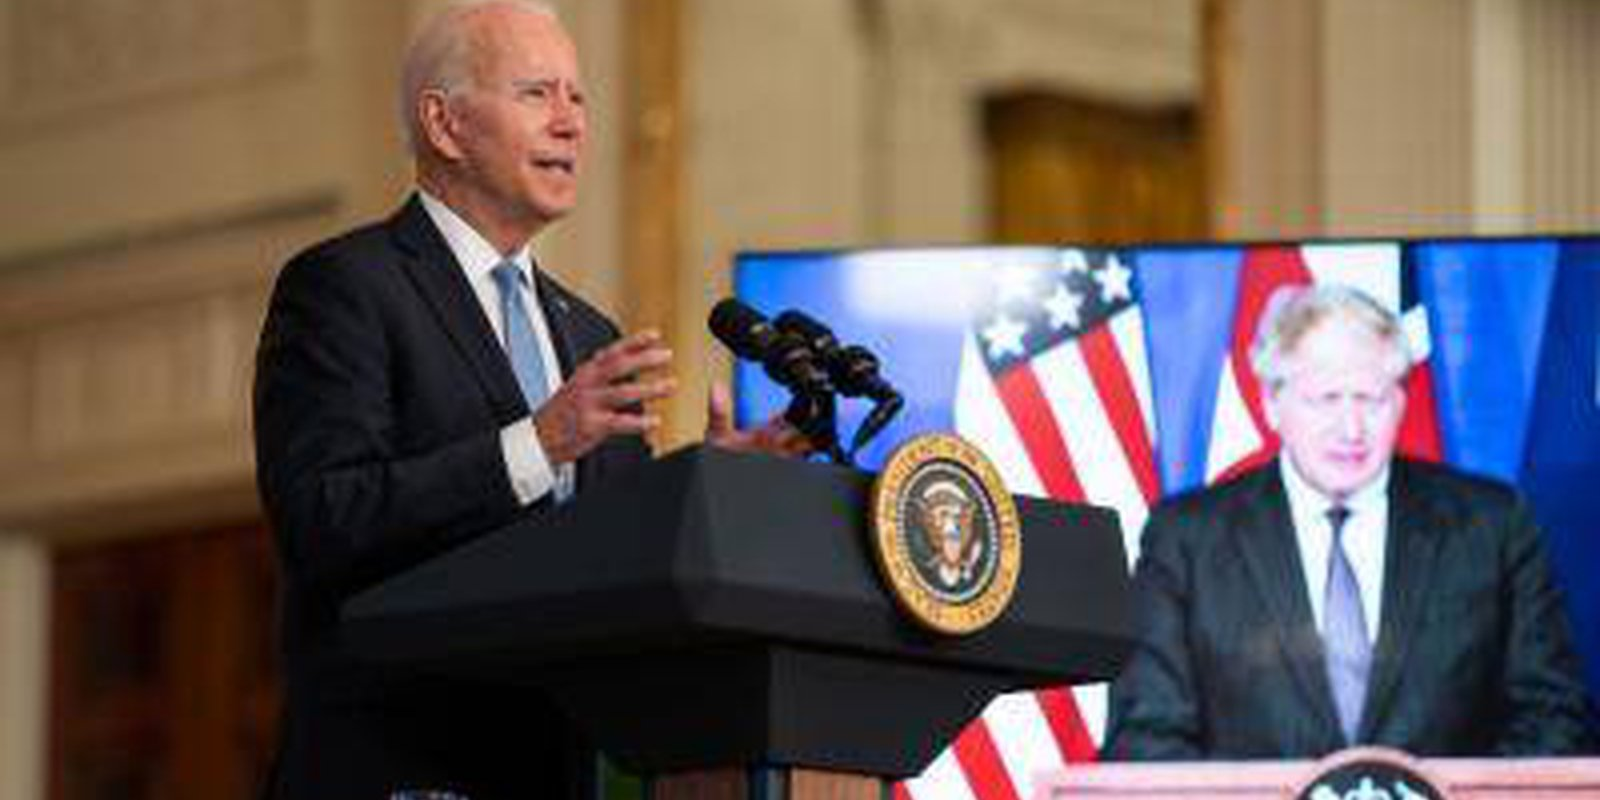 President Joe Biden announces the USwill share nuclear submarine technology with Australia, joined virtually by Prime Minister Scott Morrison of Australia and UK Prime Minister Boris Johnson. Photo by Kent Nishimura/Los Angeles Times via Getty Images